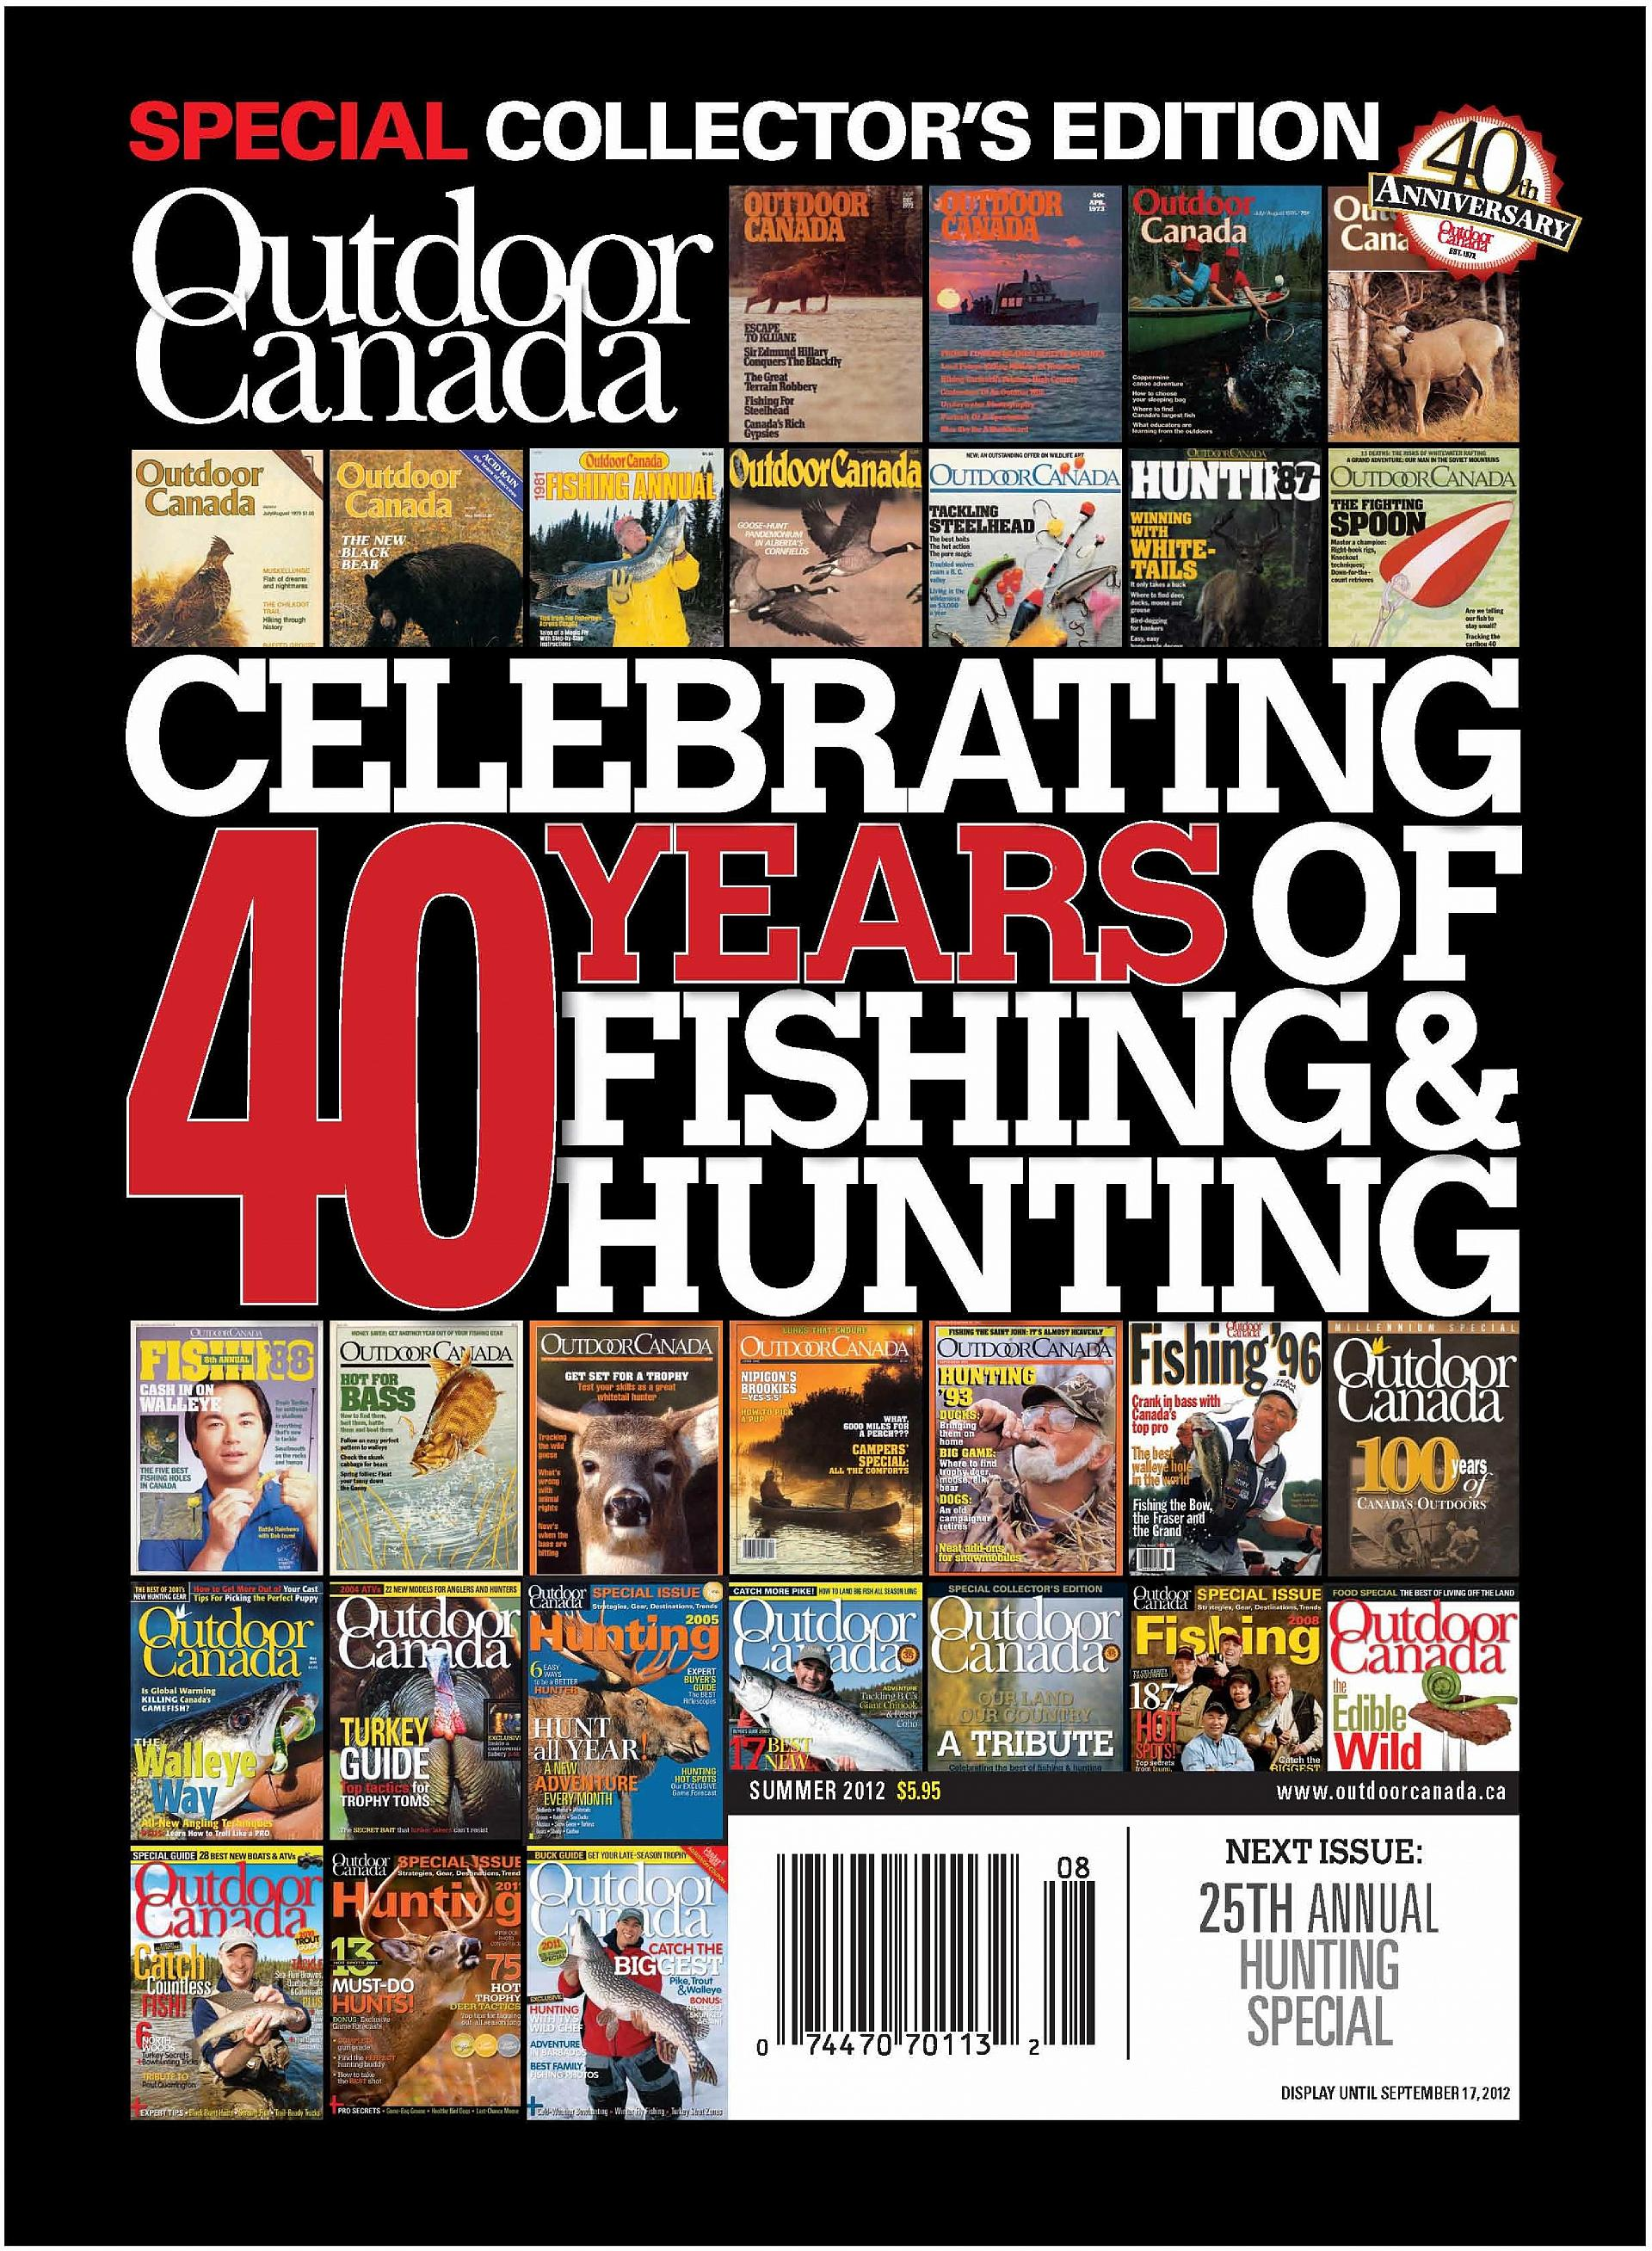 Award contender: Outdoor Canada's Summer 2012 cover story celebrating the magazine's 40th anniversary, has been nominated for a National Magazine Award